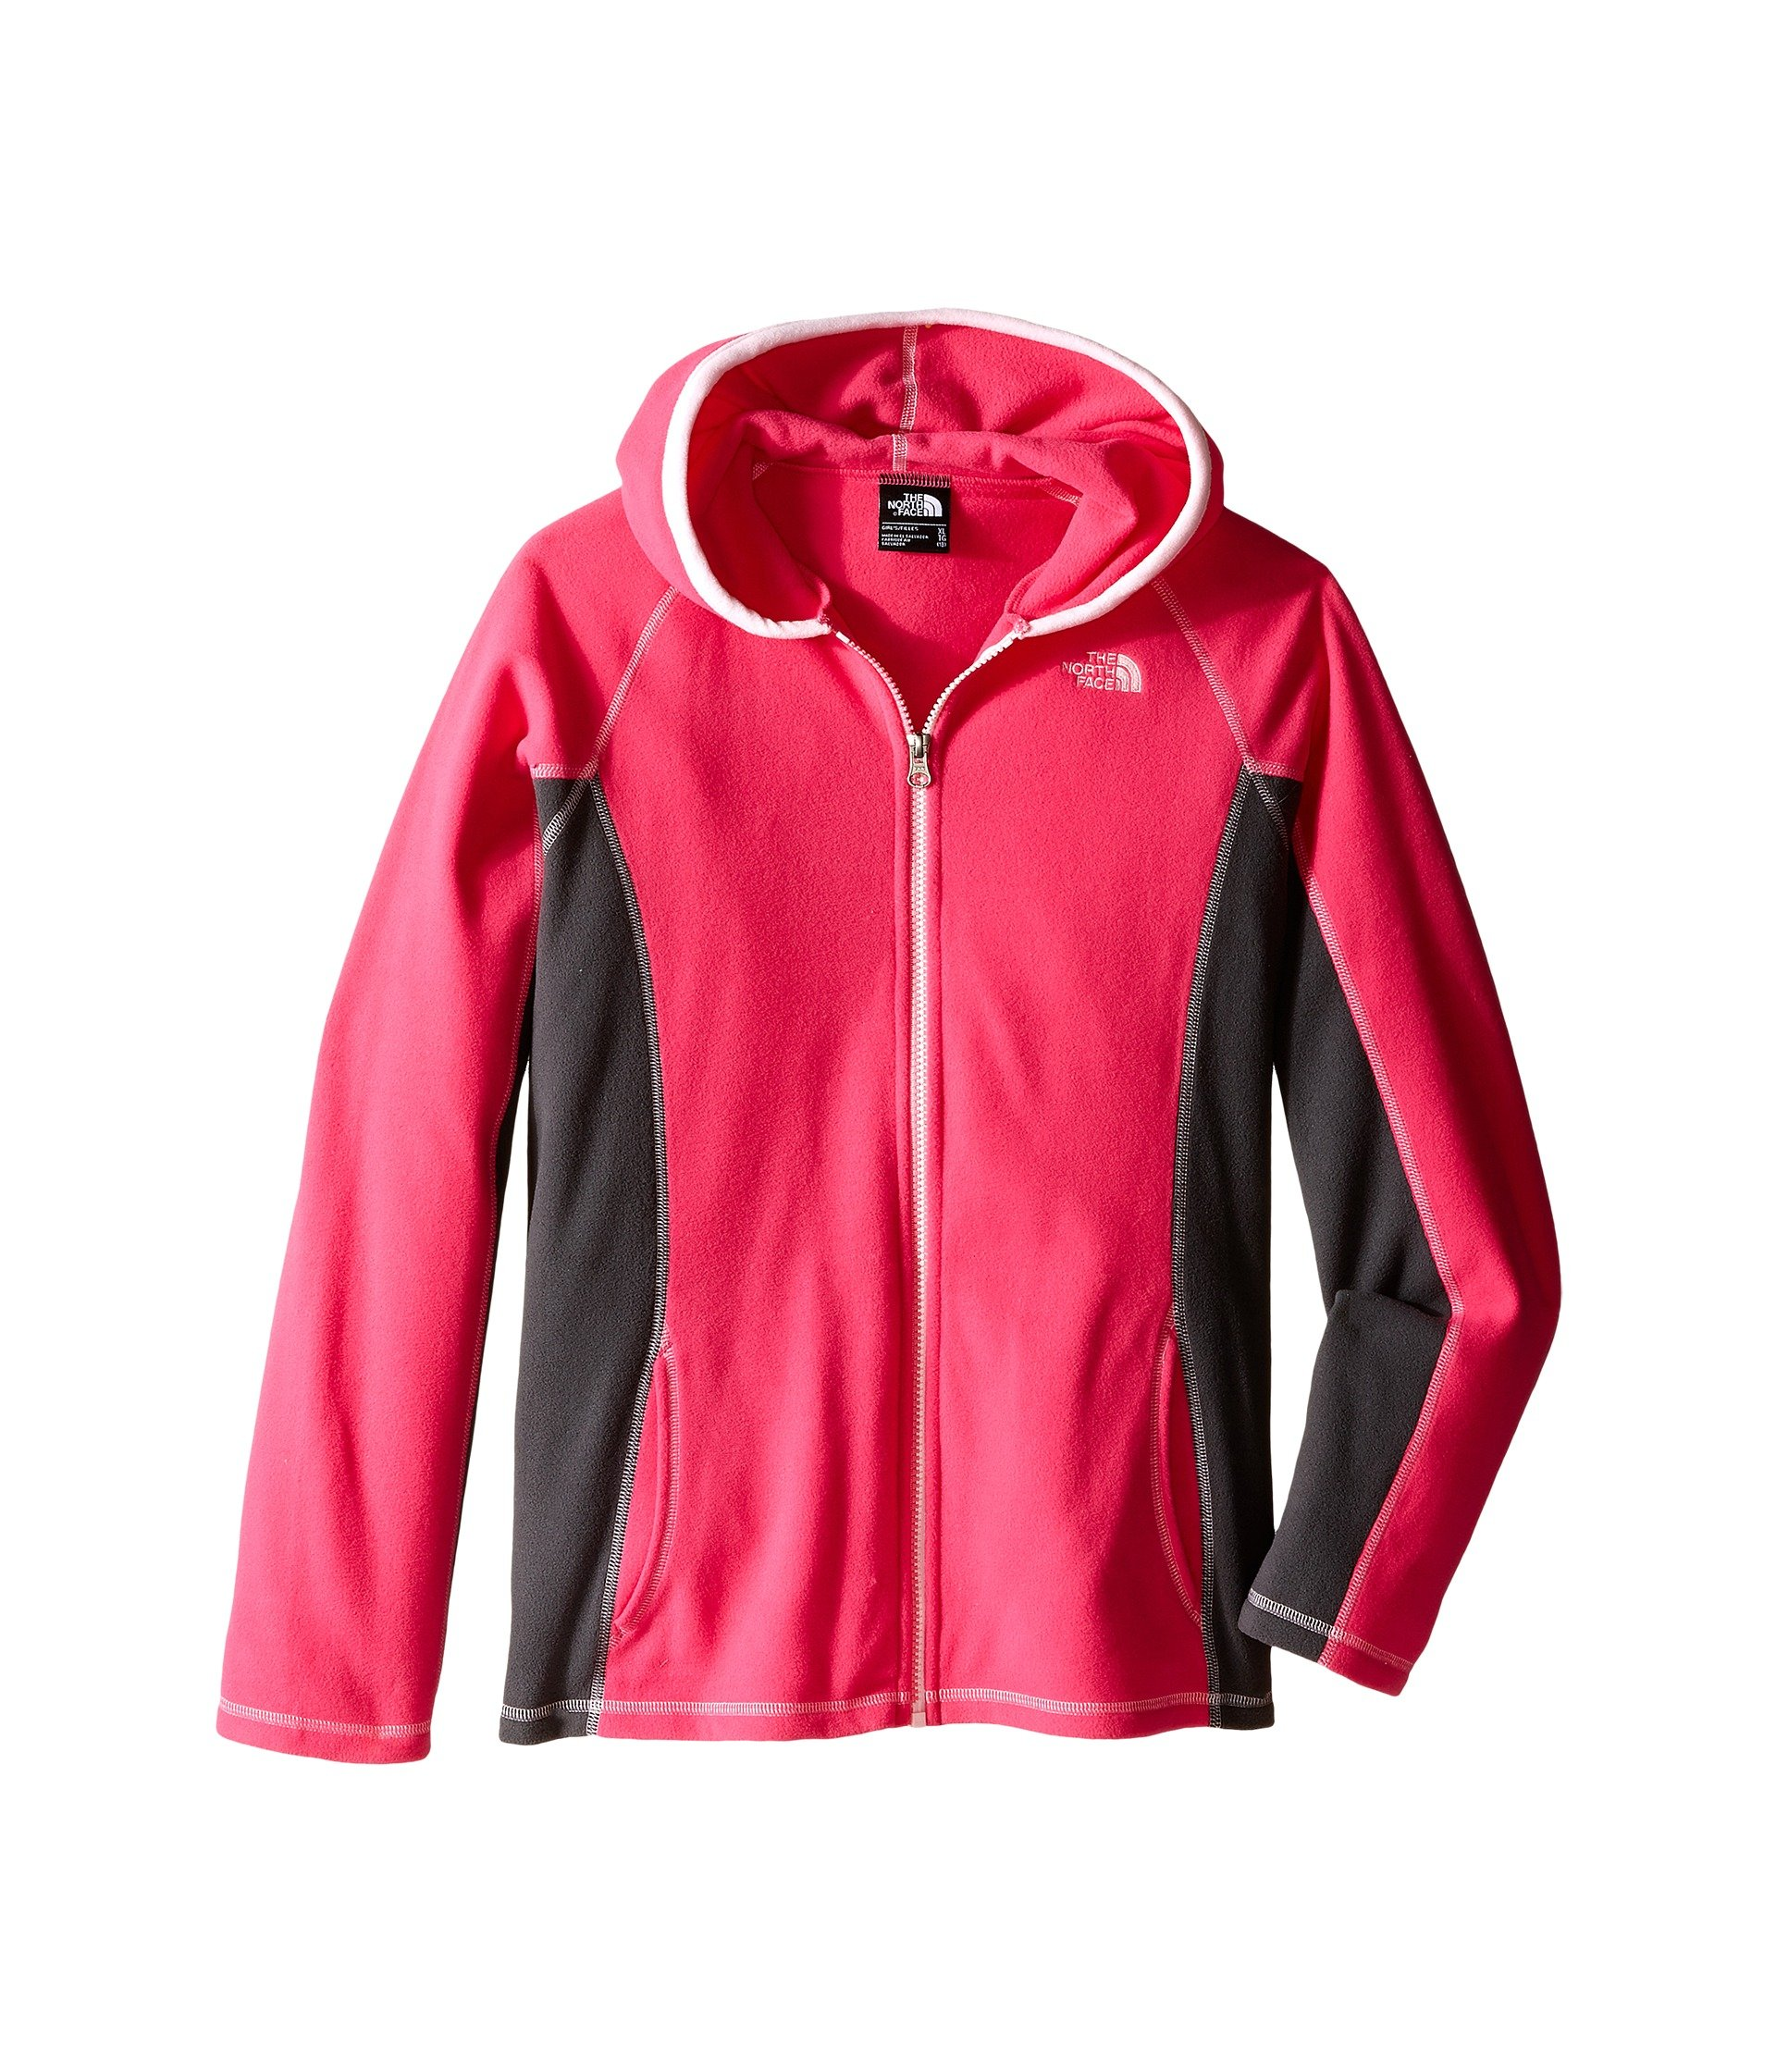 The North Face Glacier Full Zip Hoodie Girls' Cabaret Pink Large